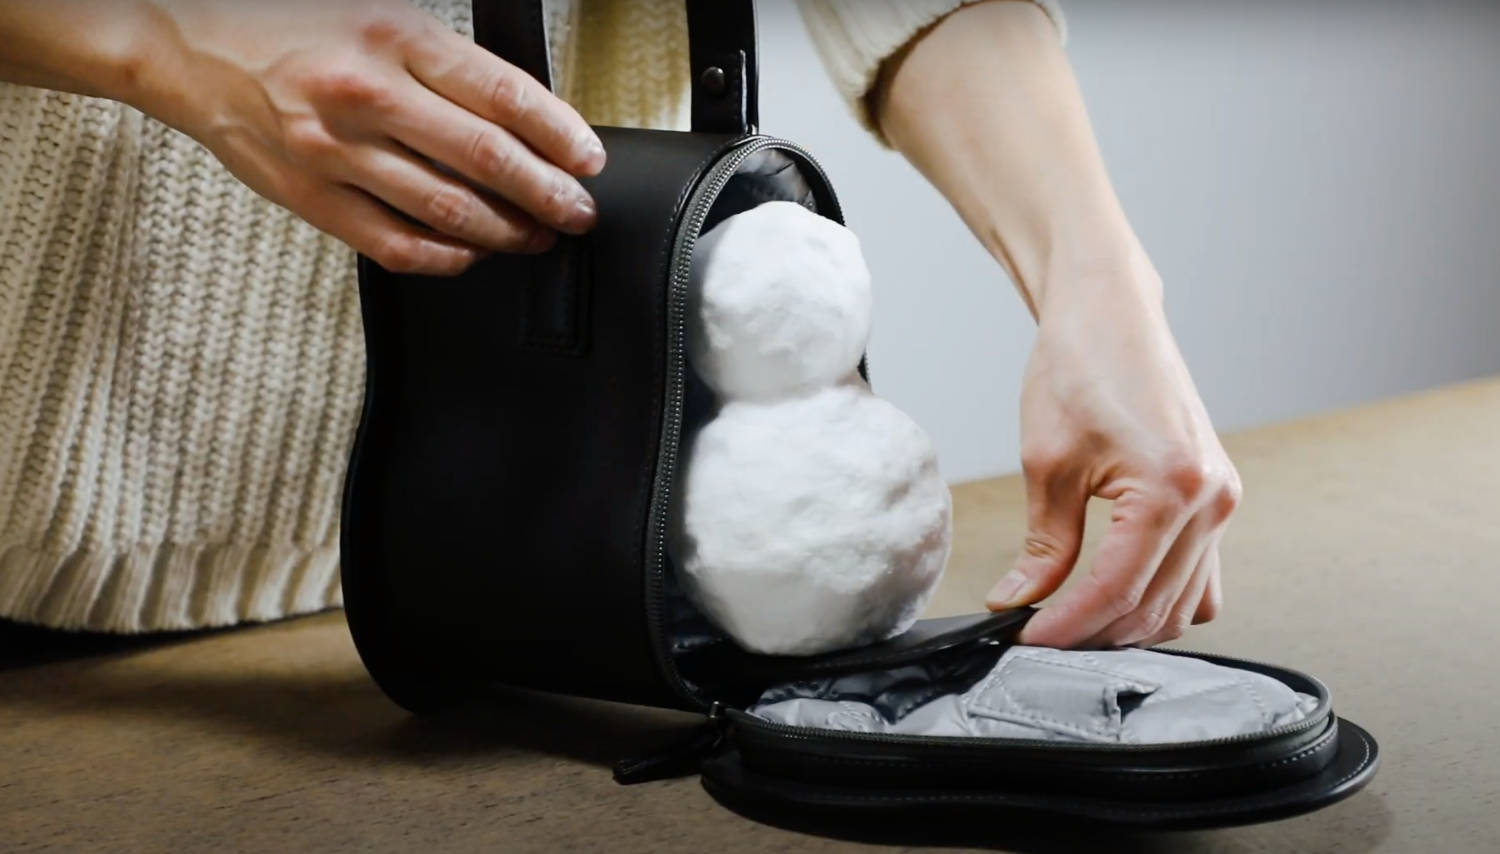 Screenshot of video of Yuko Matsuzawa crafting a carrying case for a snowman